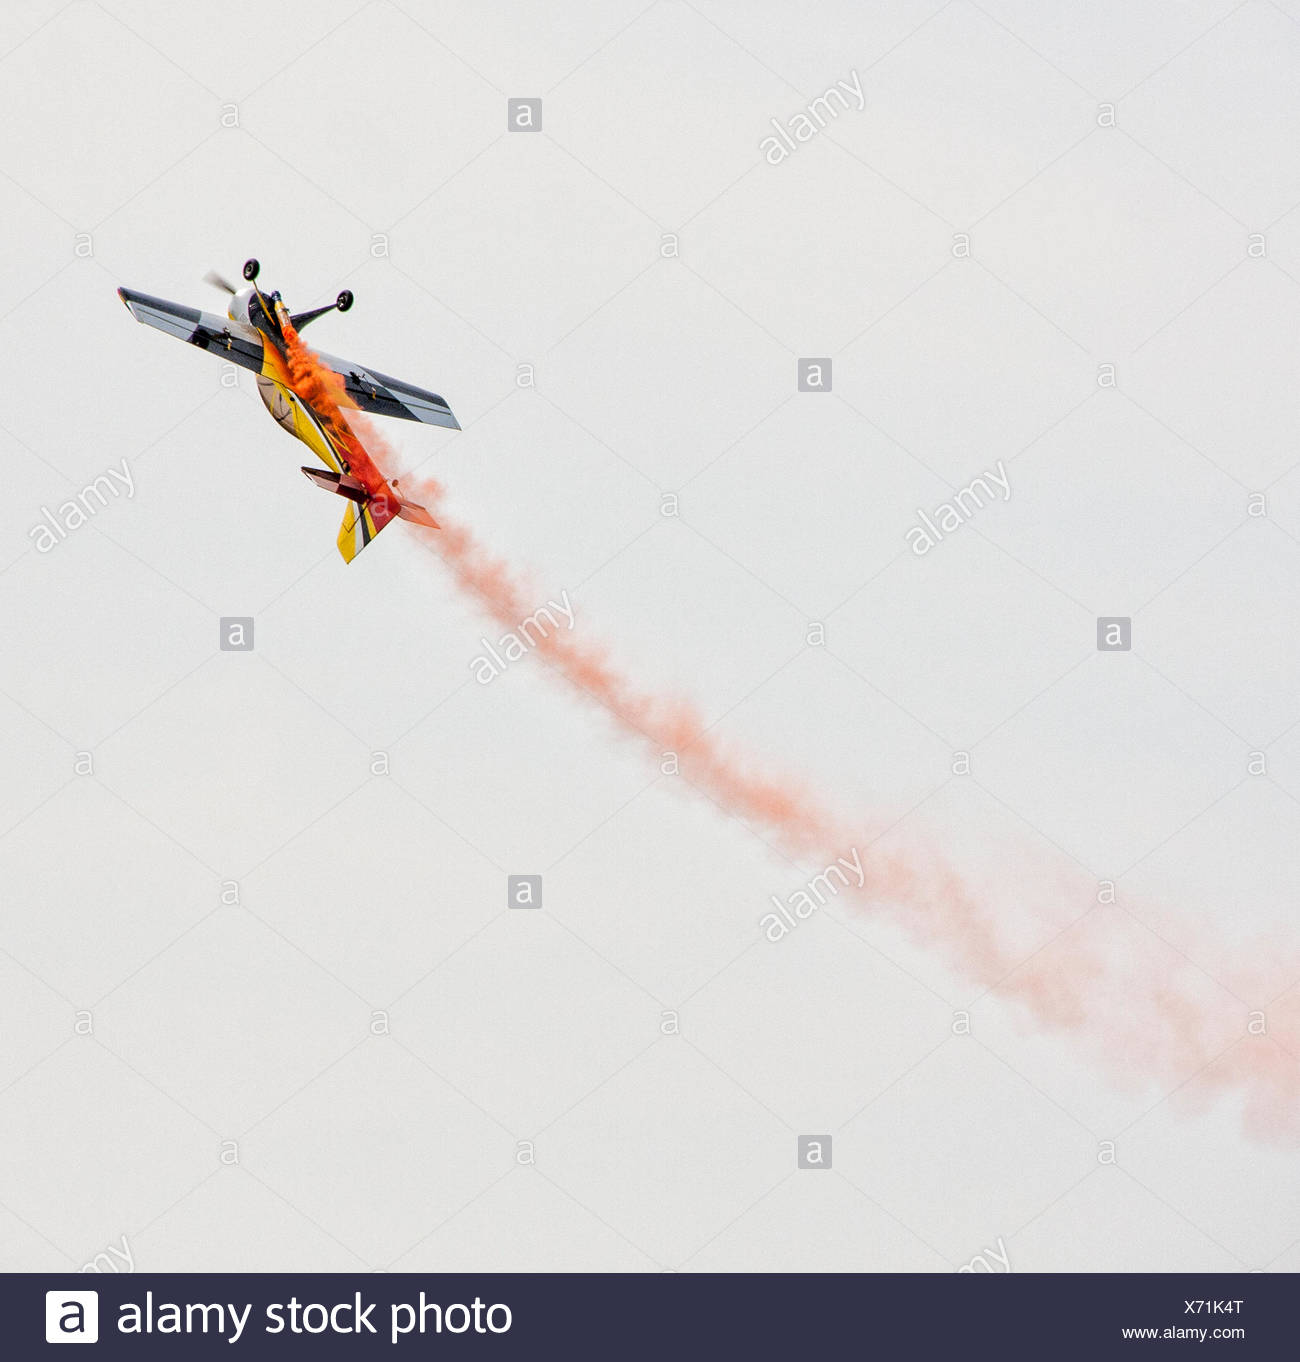 Low angle view of performing stunt plane - Stock Image